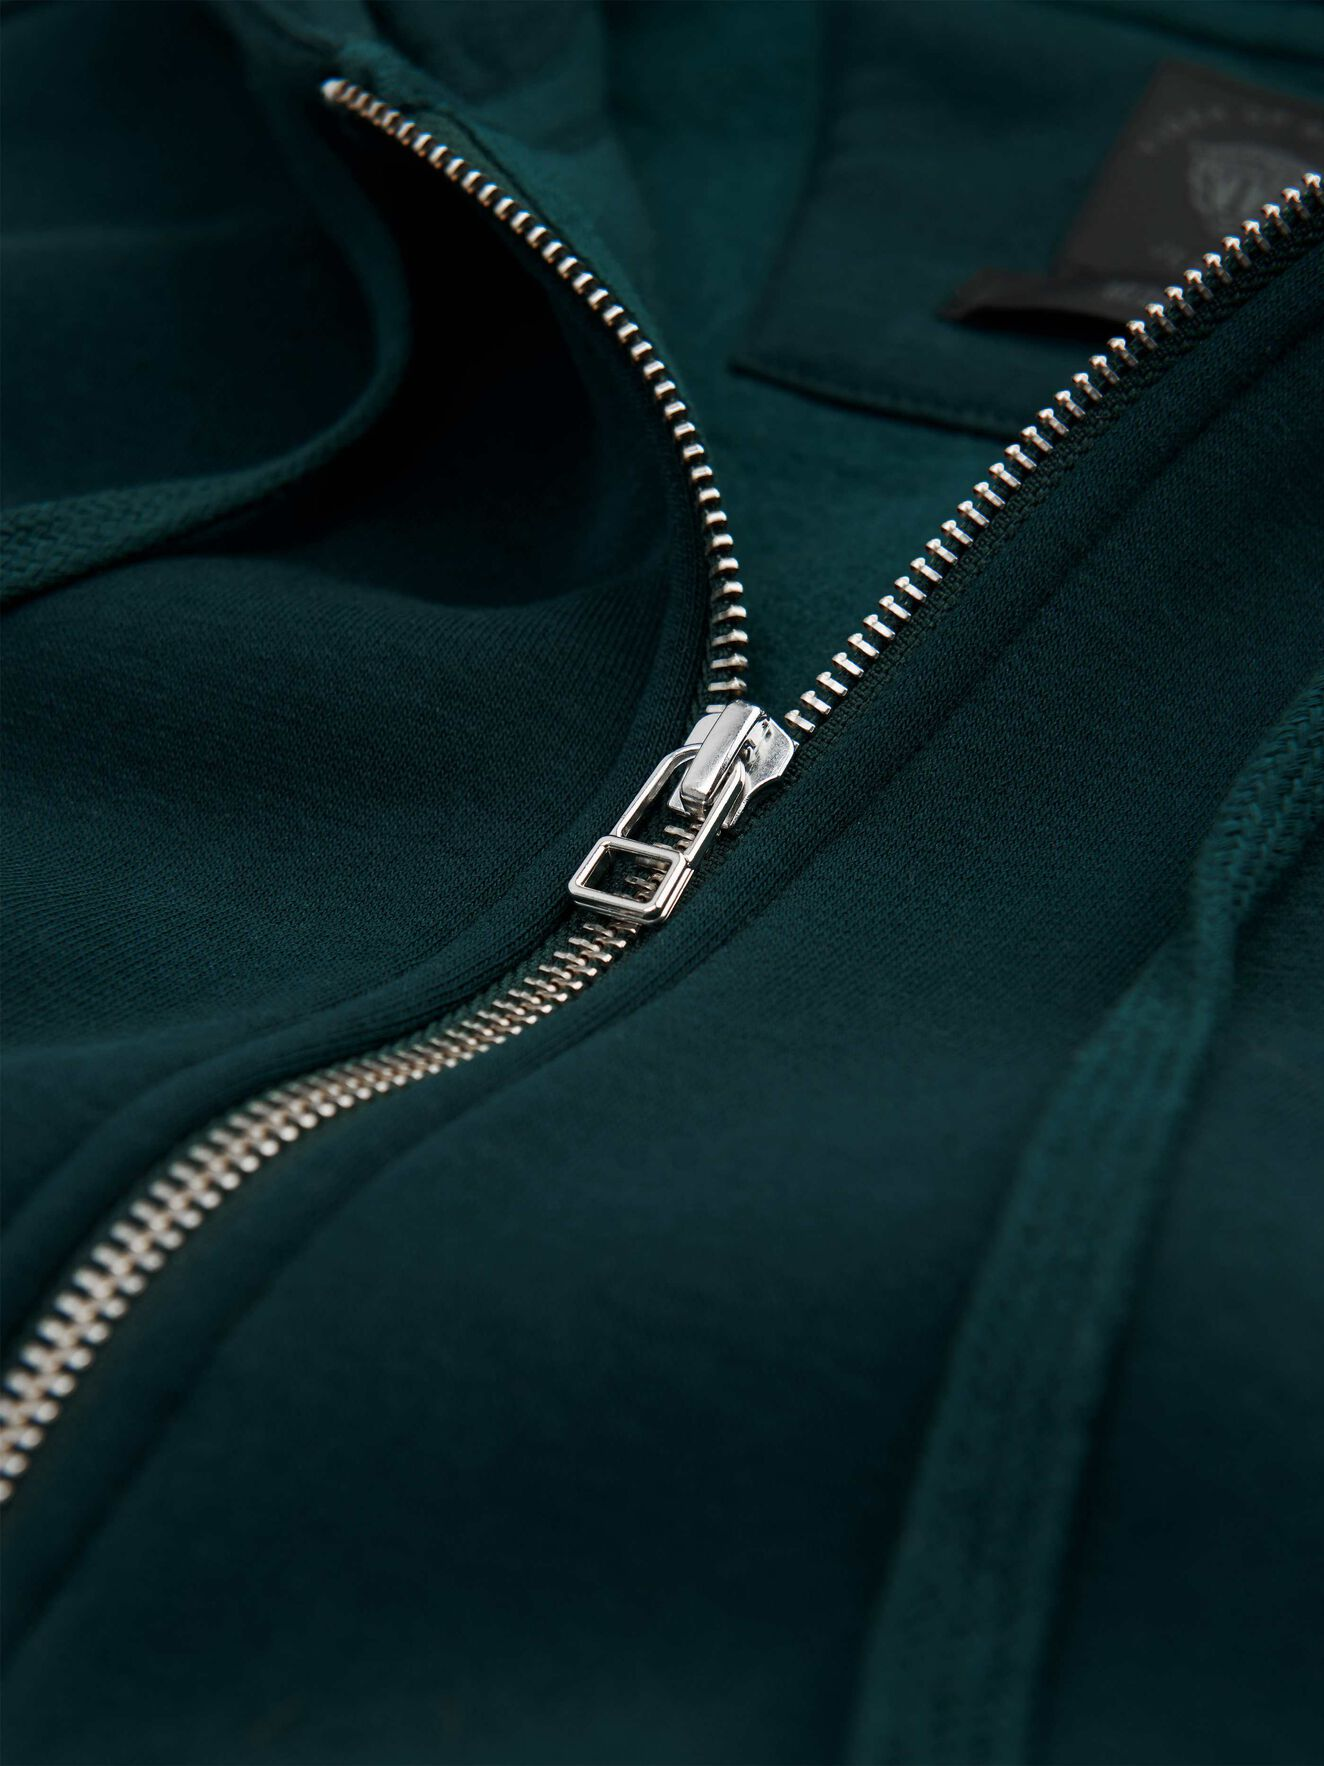 Capone Sweatshirt in Ocean Green from Tiger of Sweden